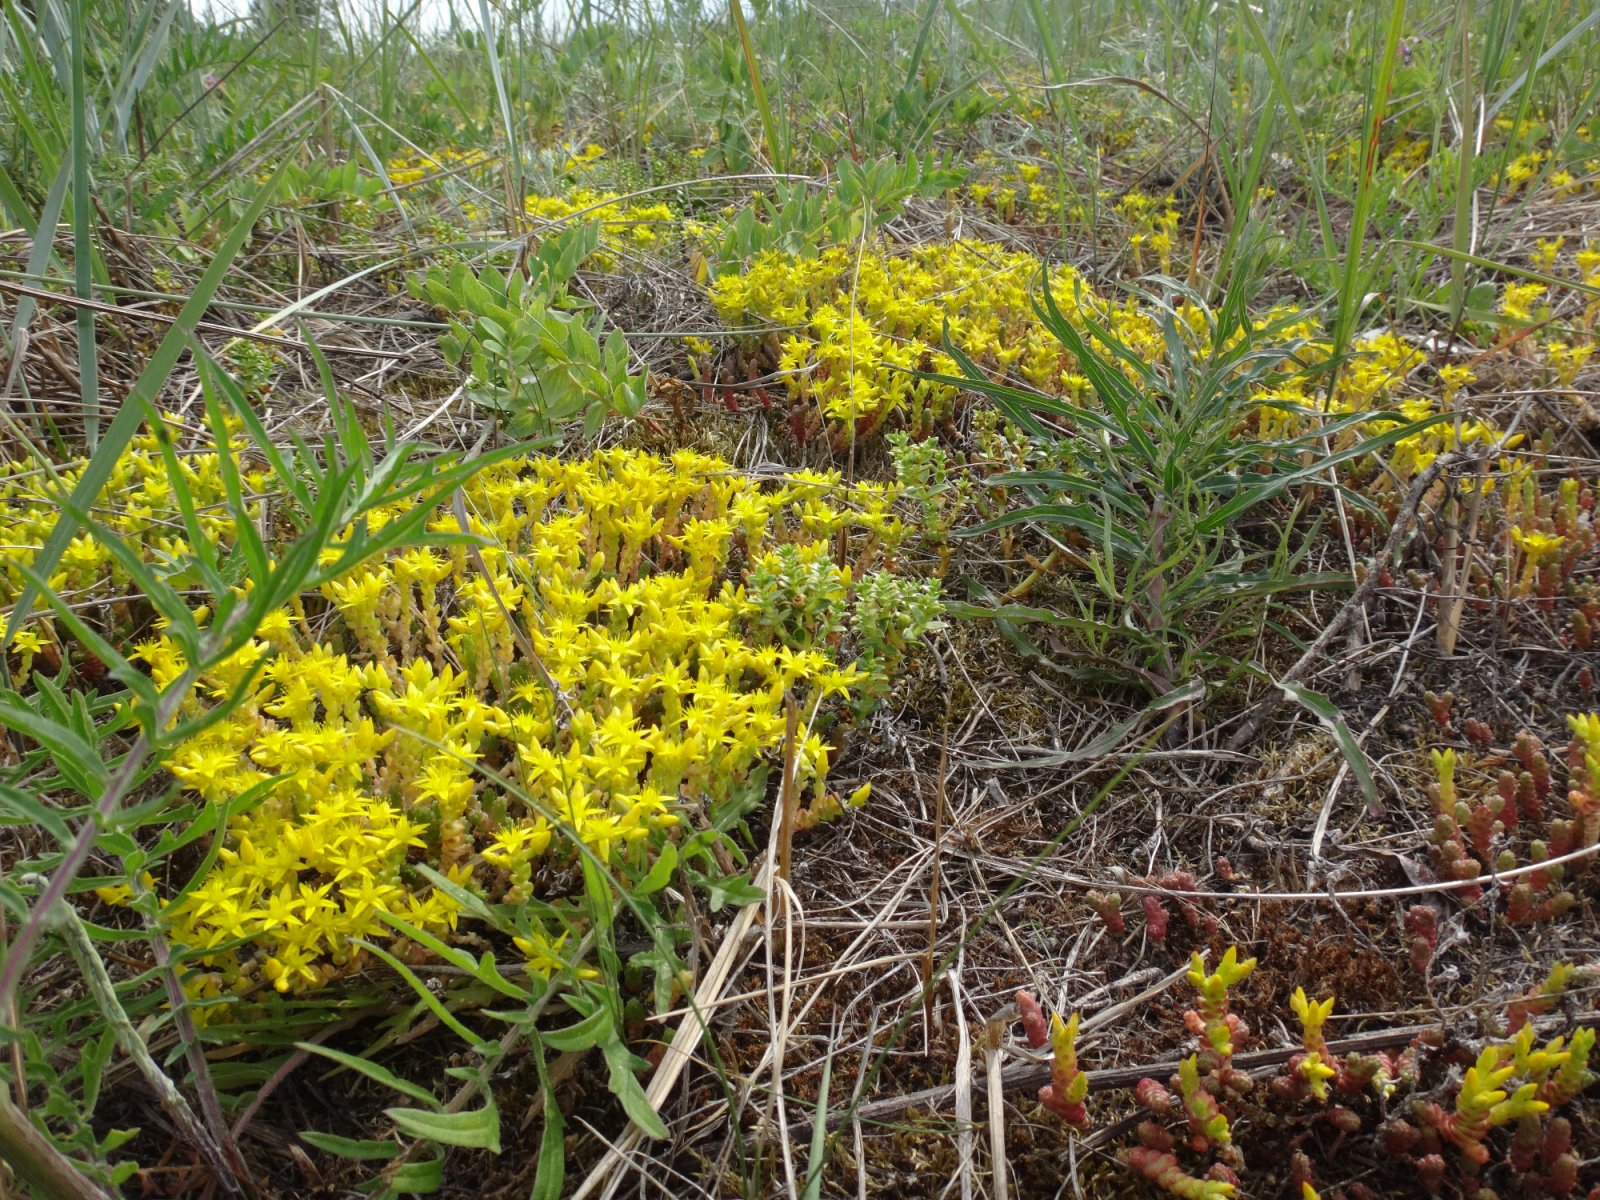 Sedum acre - a plant characteristic to the coastal habitat